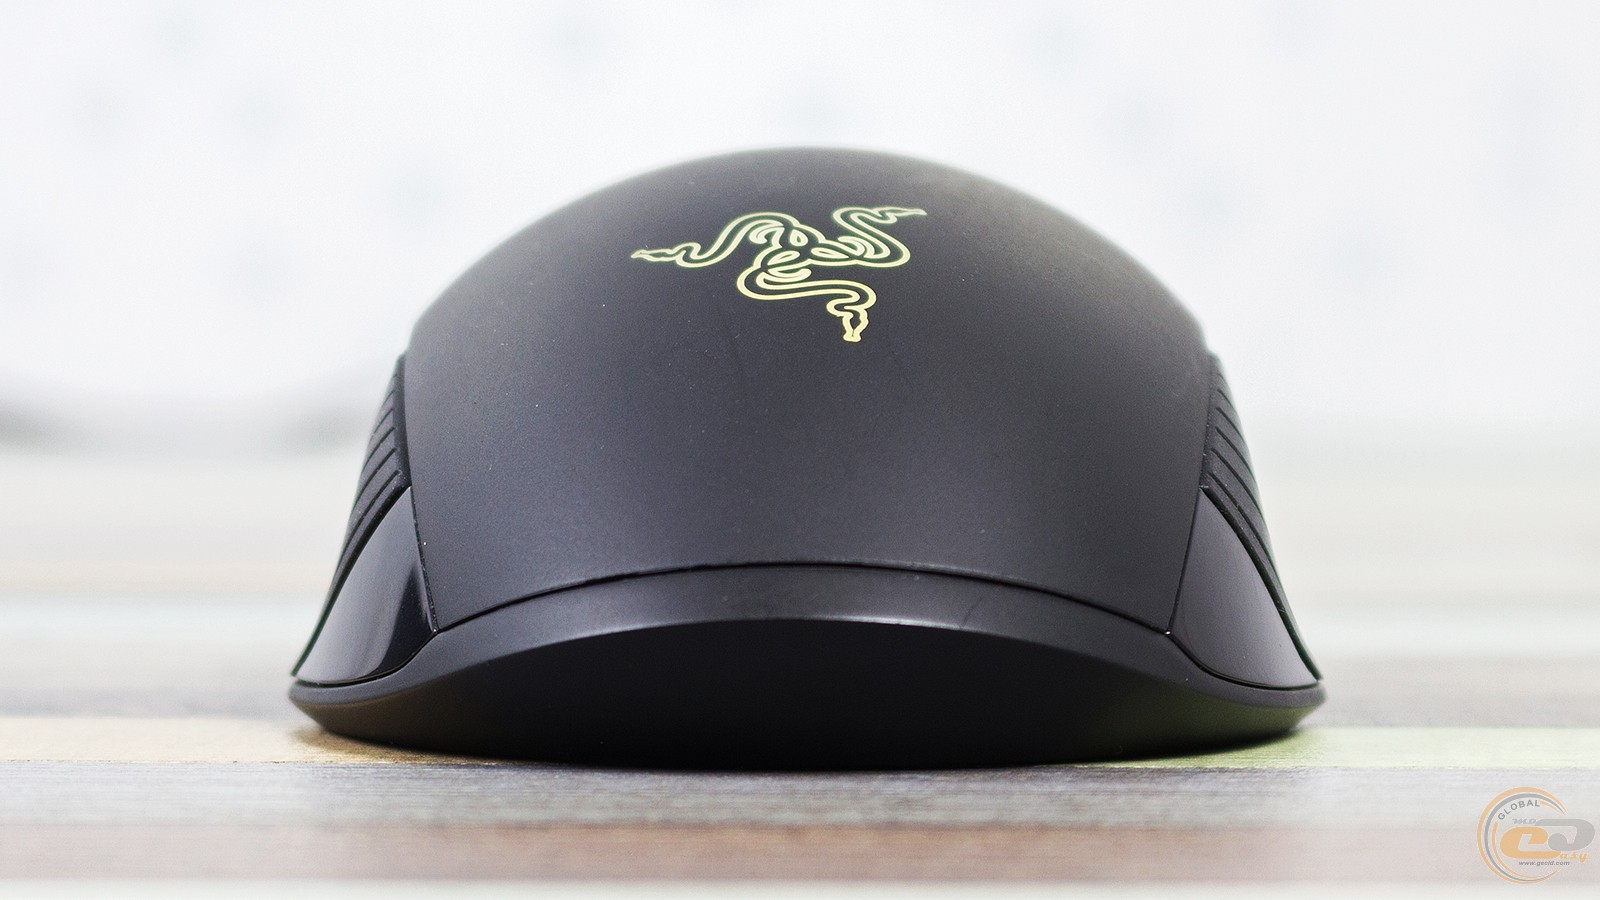 Razer Lancehead Tournament Edition вид спереди сзади